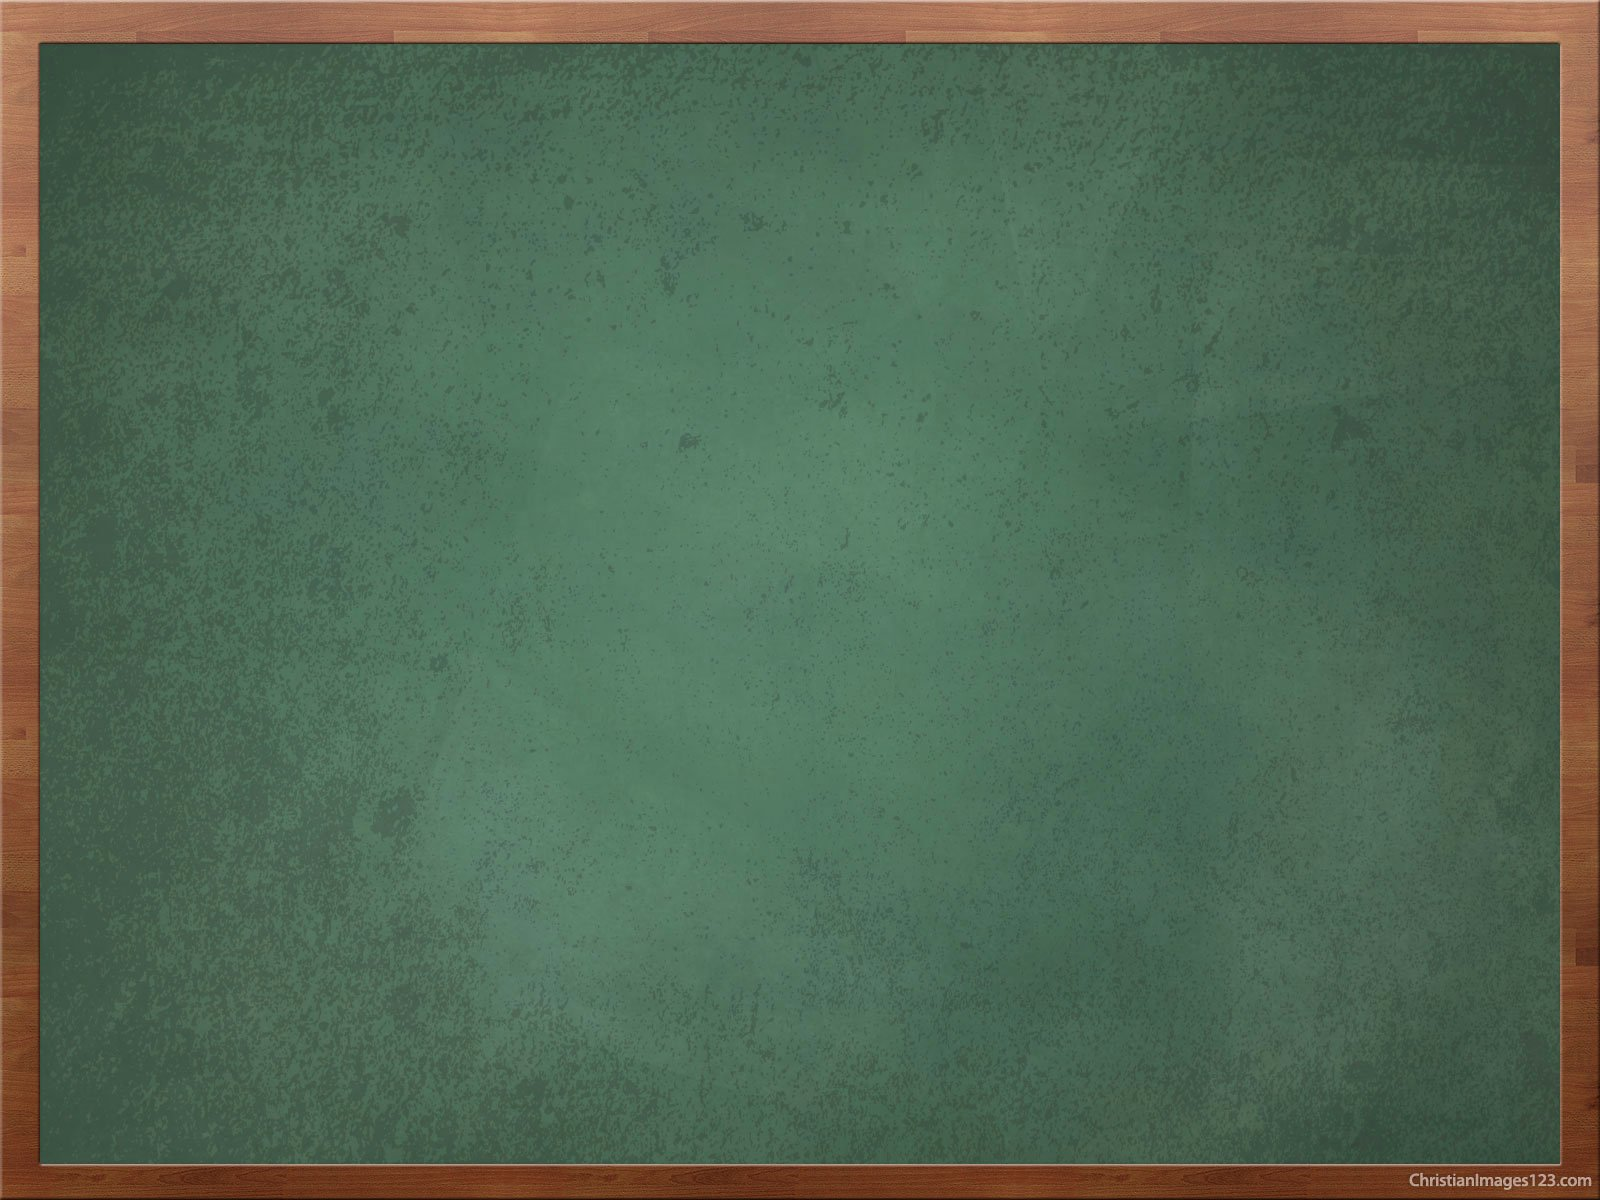 Chalkboard Powerpoint Template Free Awesome Green Chalkboard Background with Frame – Free Christian